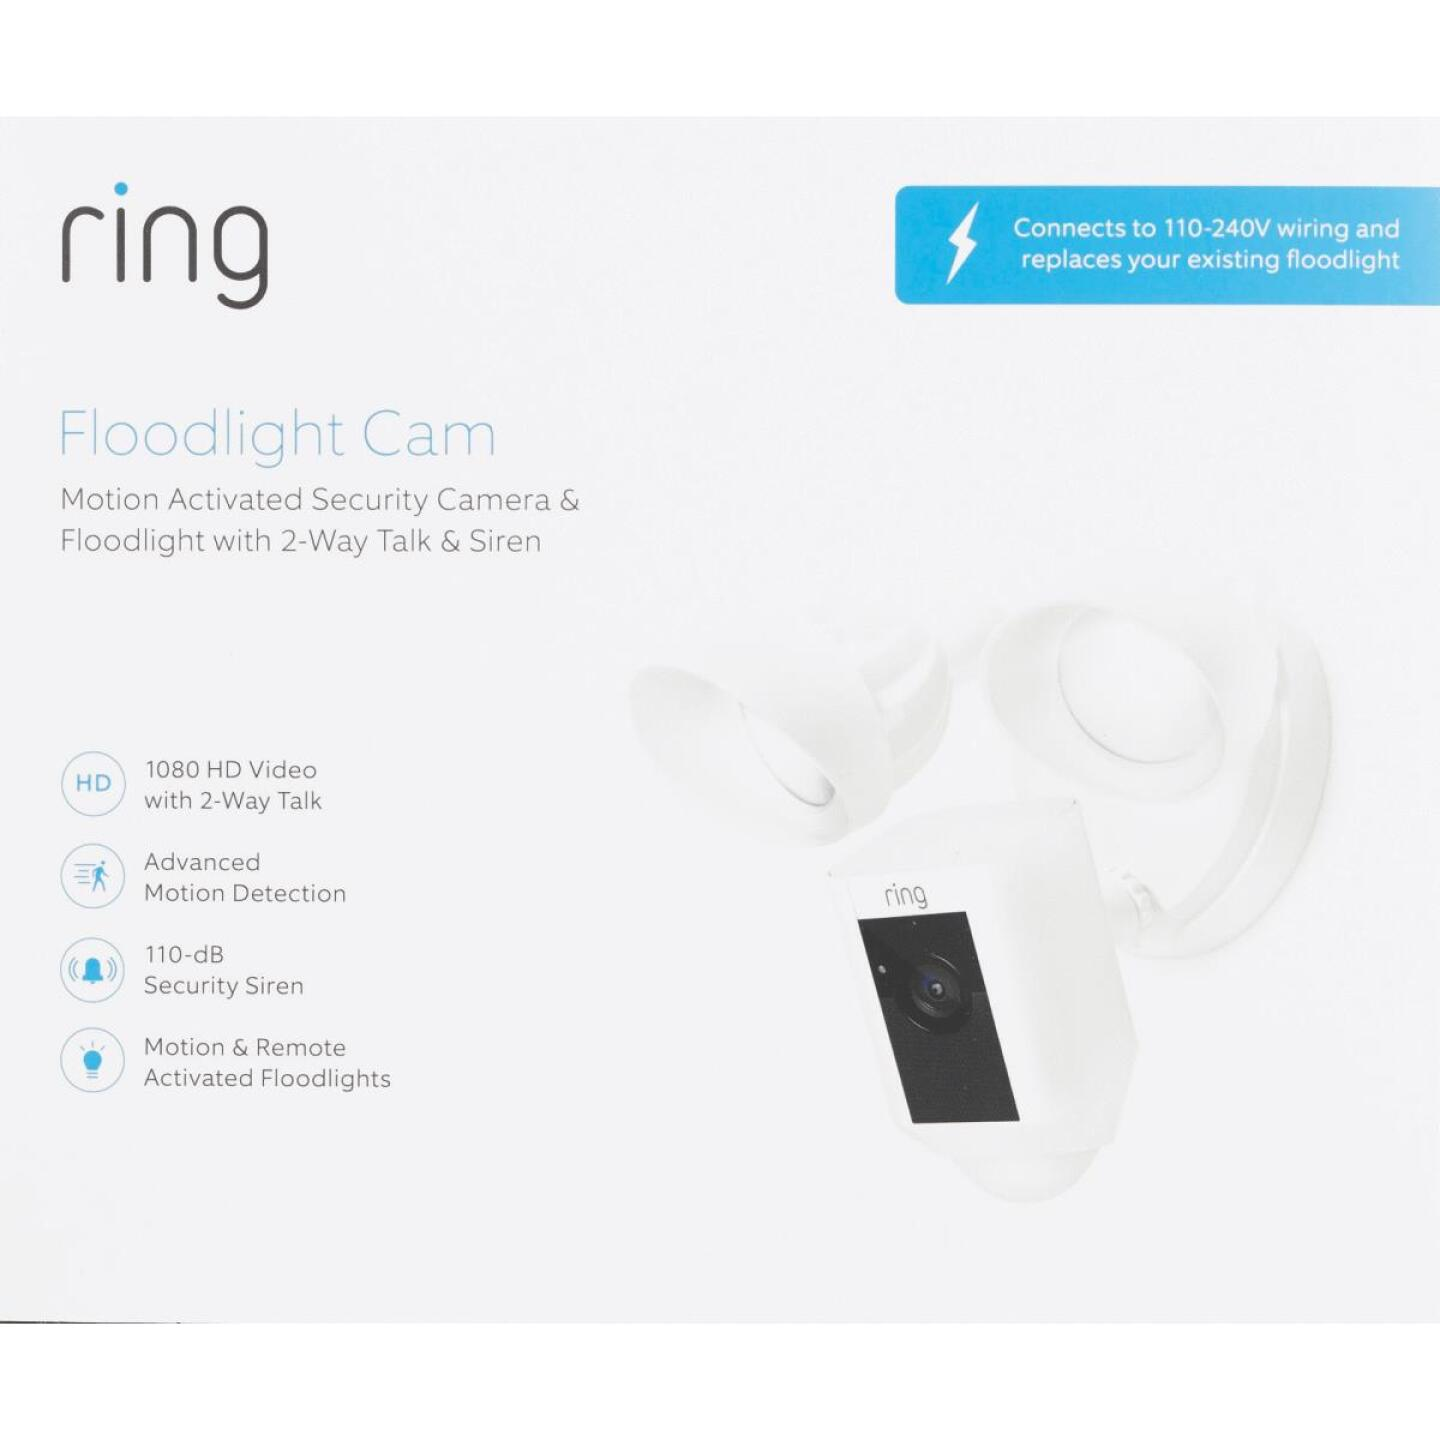 Ring Hardwired Outdoor White Security Camera with Floodlight Image 2